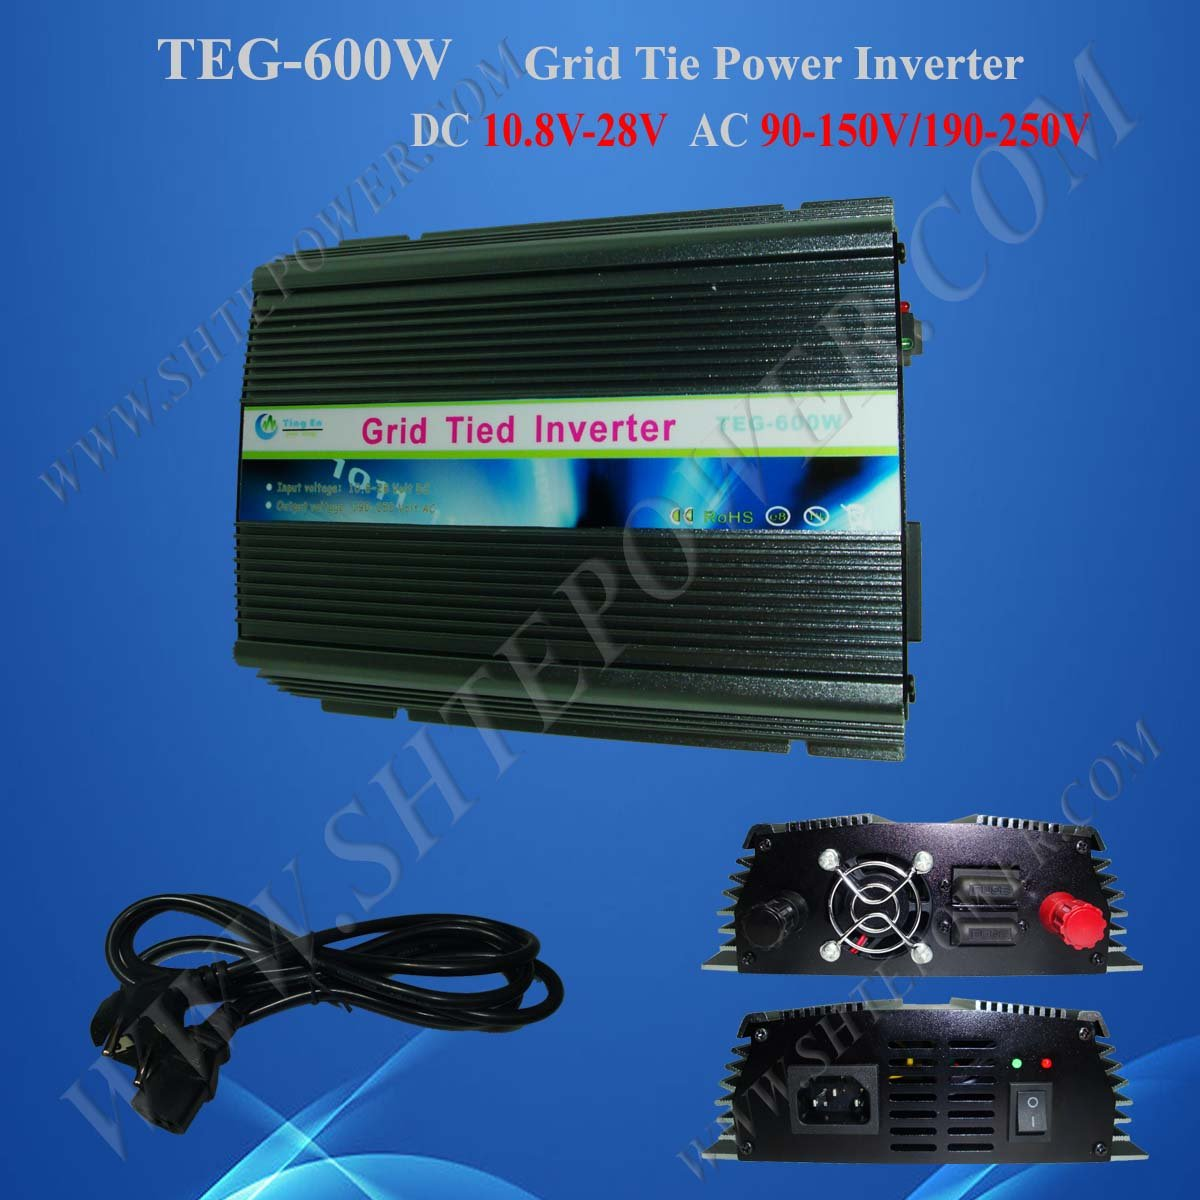 цена на 600W Power Inverter for Solar Panel On Grid System, DC 10.8V-28V to AC 190V-250V, One Year Warranty, High Quality